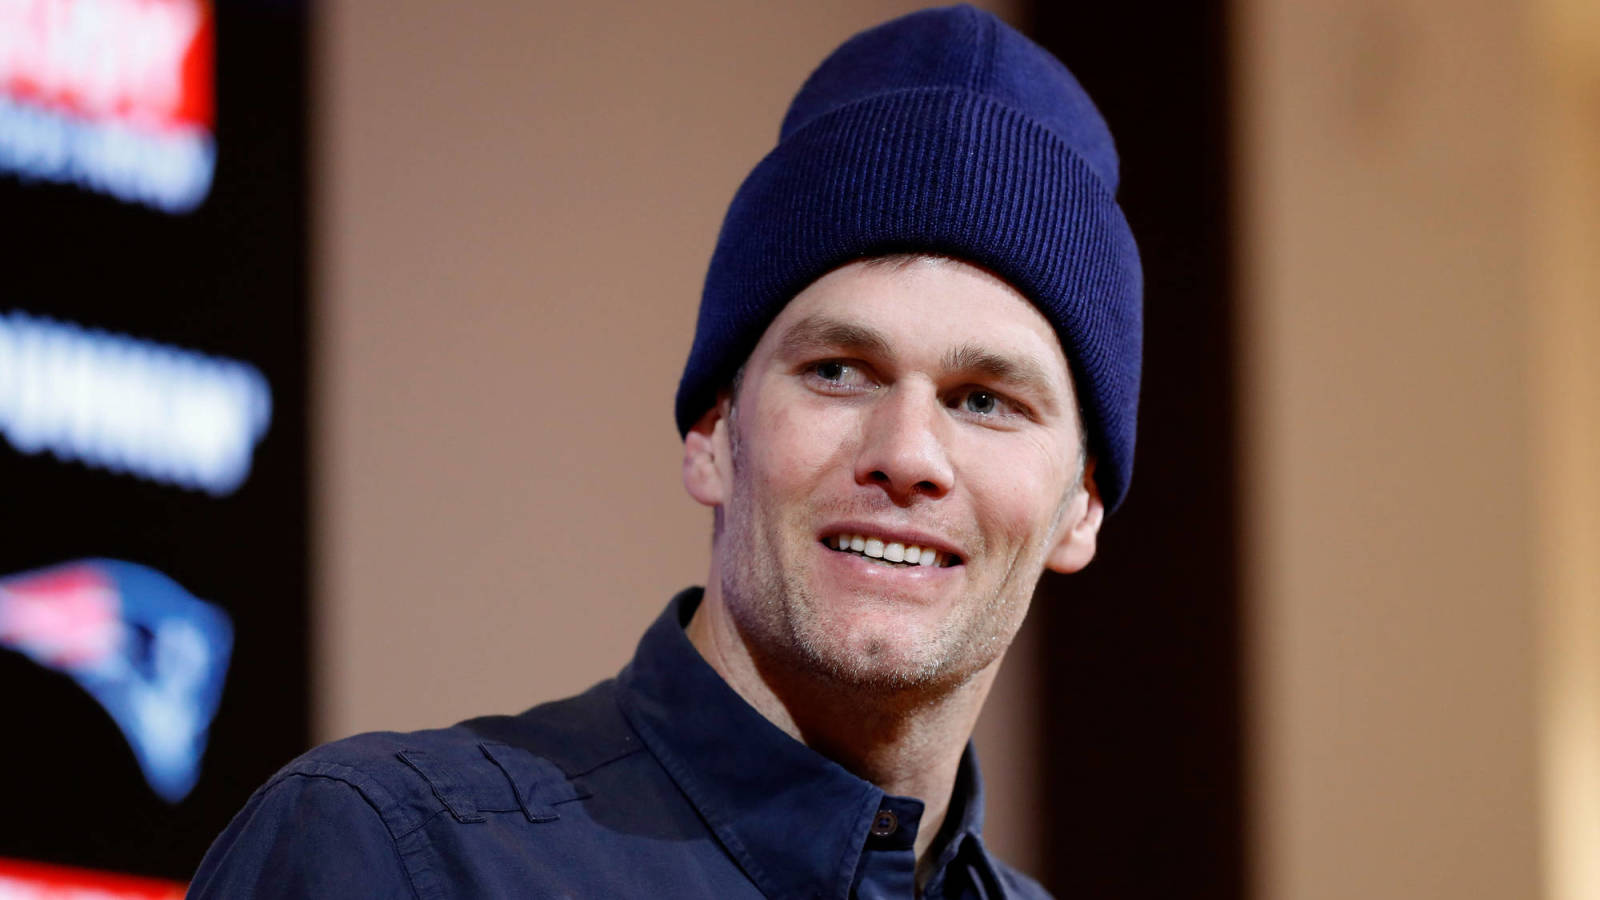 Producer reveals what to expect from Tom Brady documentary